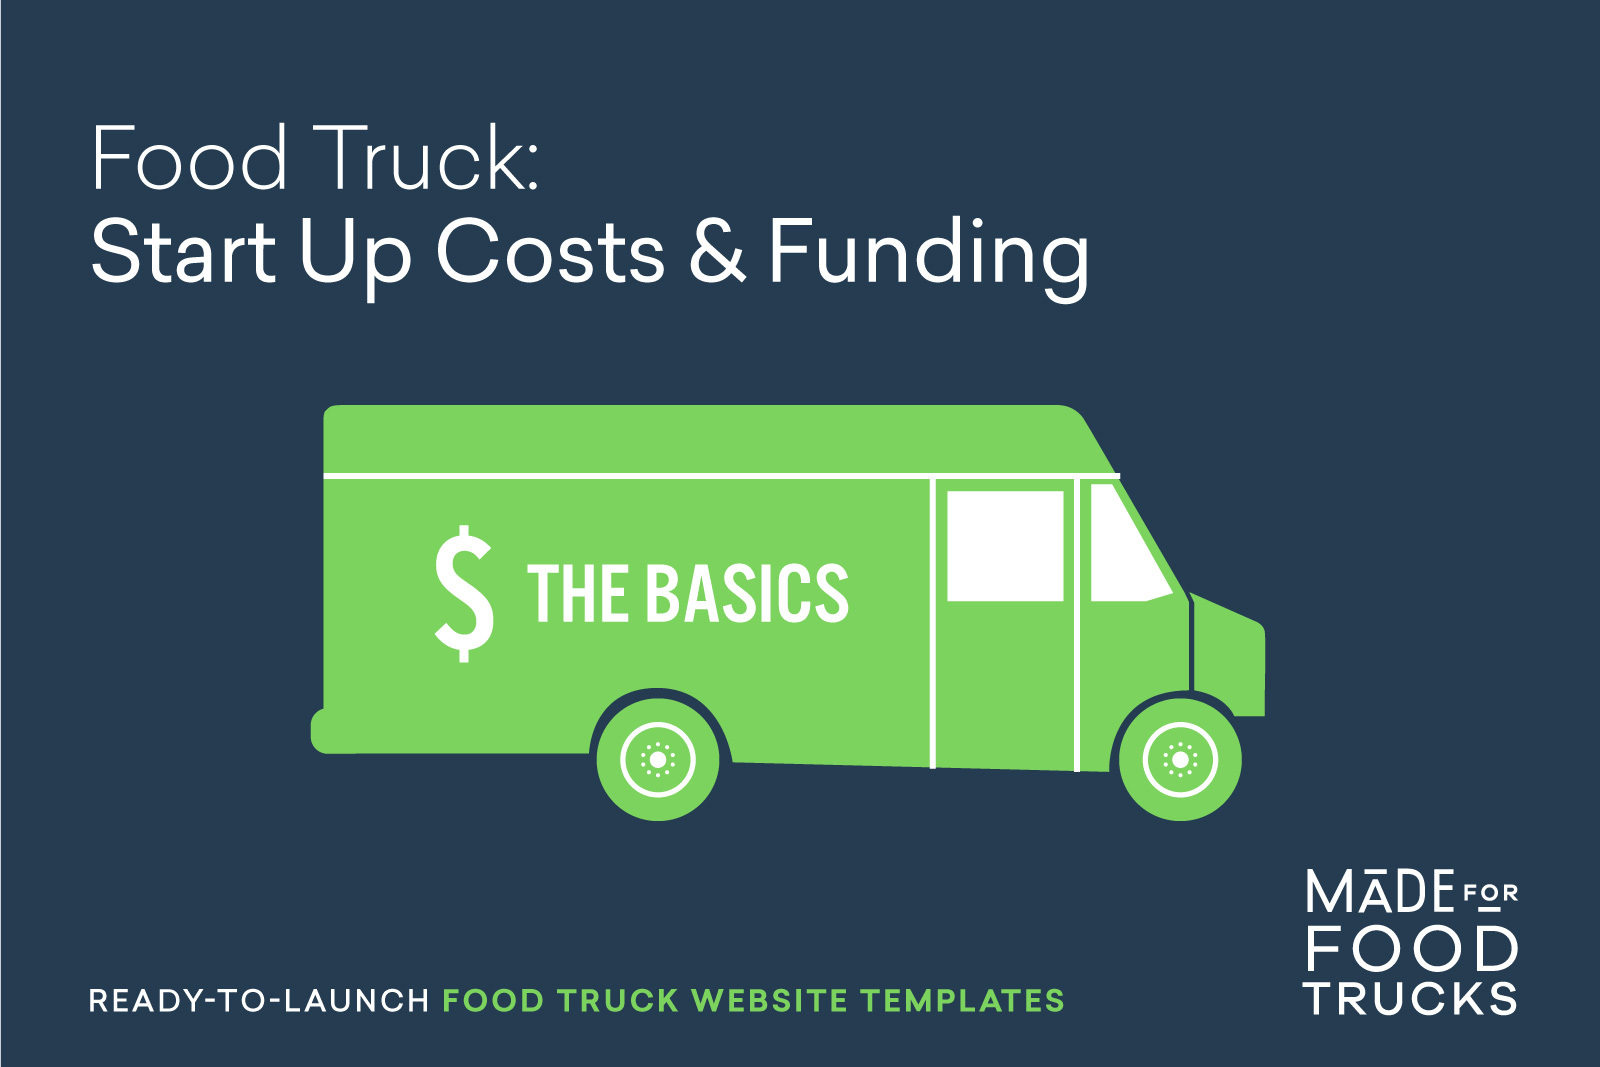 What Is The Start Up Cost For A Food Truck